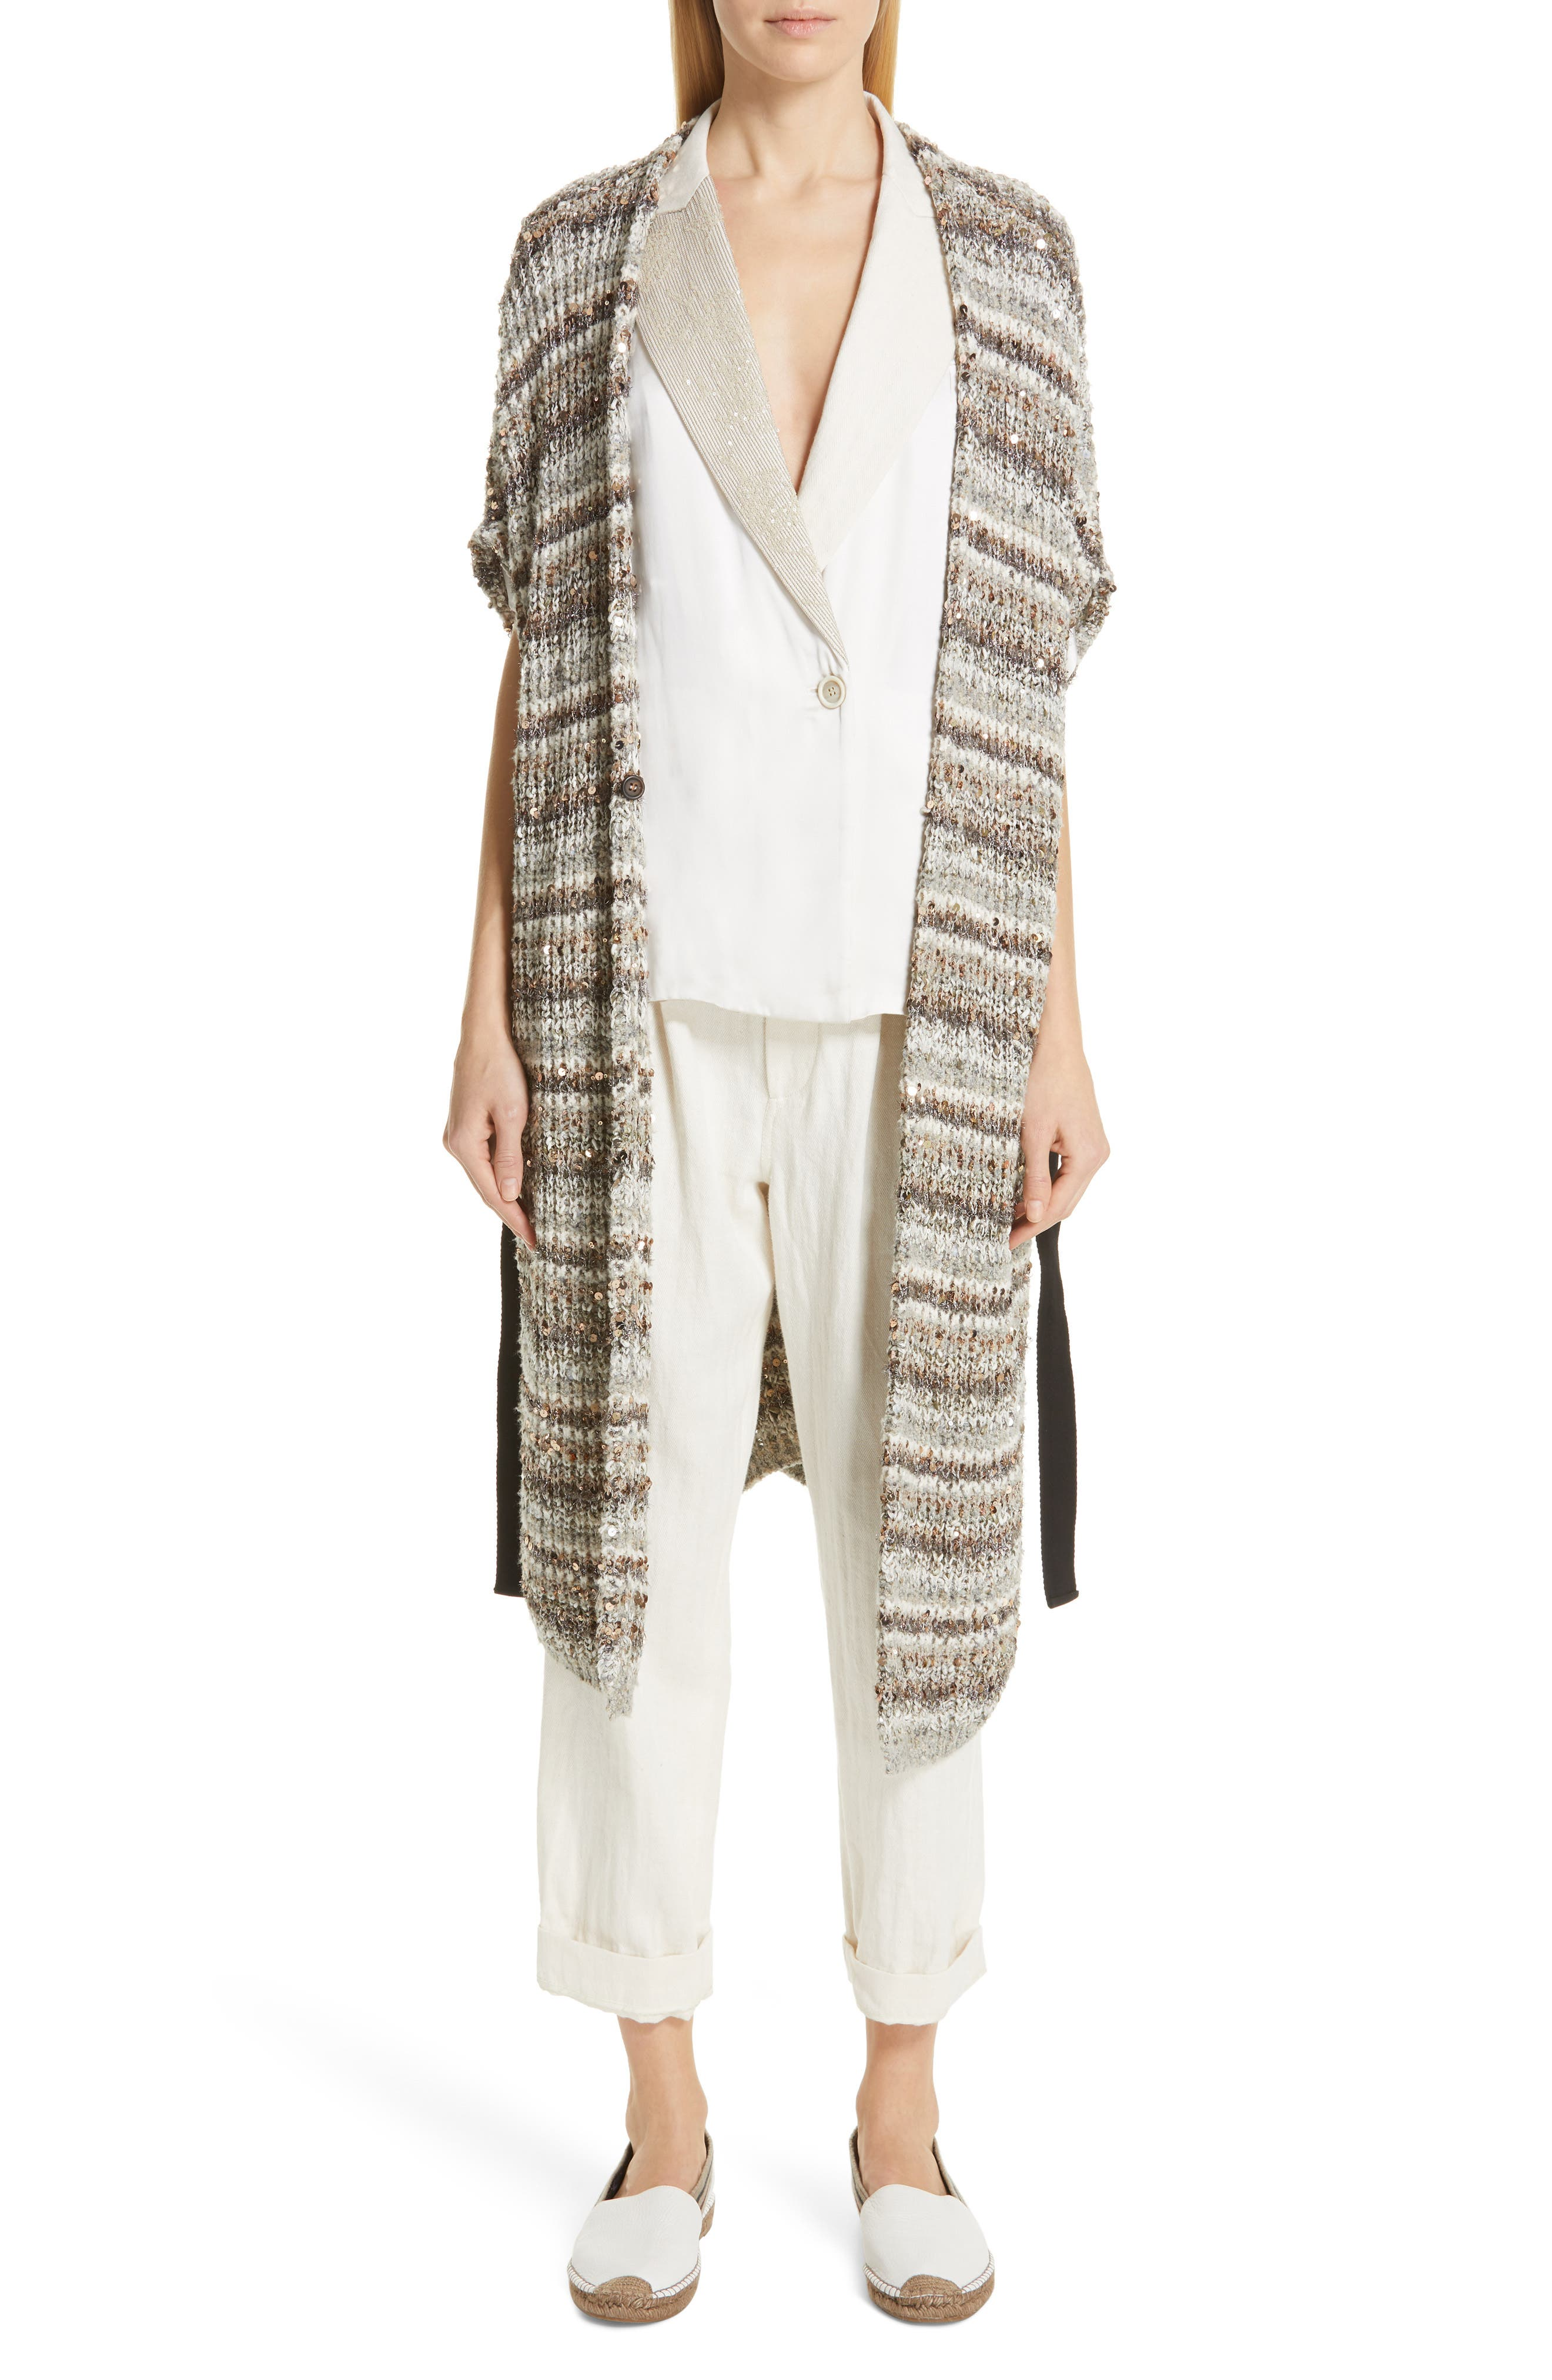 BRUNELLO CUCINELLI,                             Embellished Lapel Satin Kimono Jacket,                             Alternate thumbnail 7, color,                             BONE